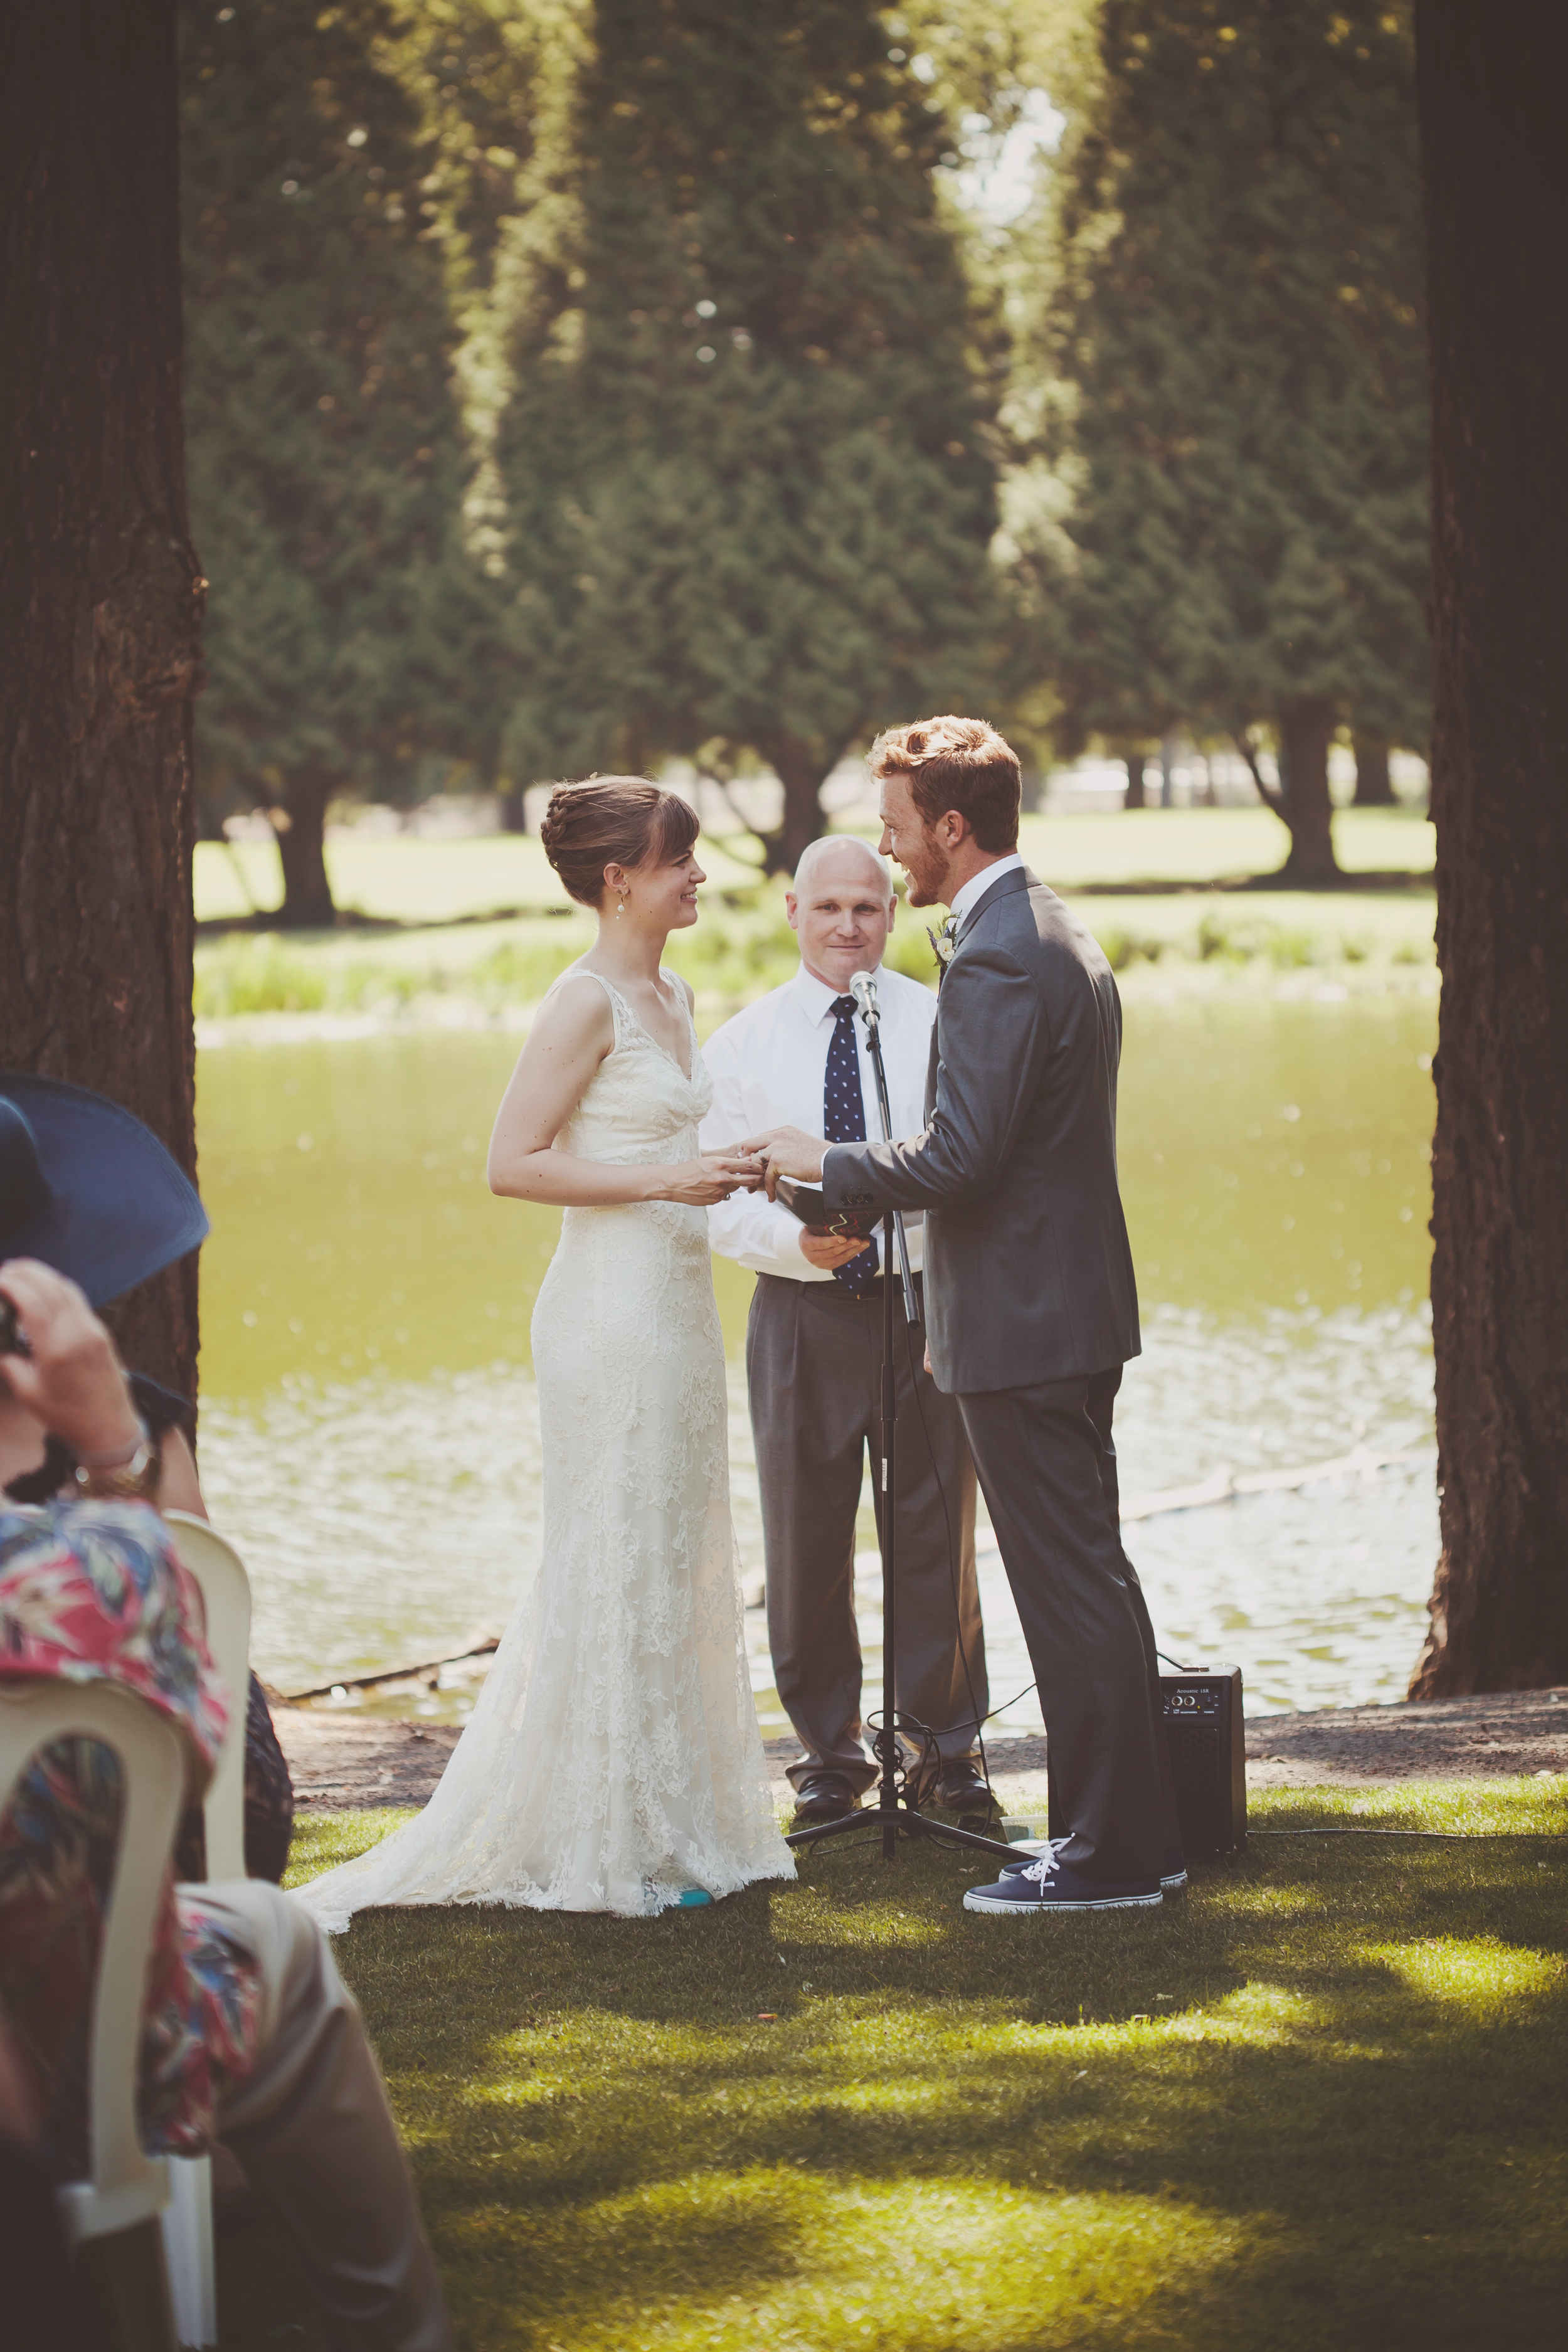 The gorgeous lakeside ceremony. We are loving the pop of color of Claire's shoes, which coordinates perfectly with the ribbon on her bouquet!